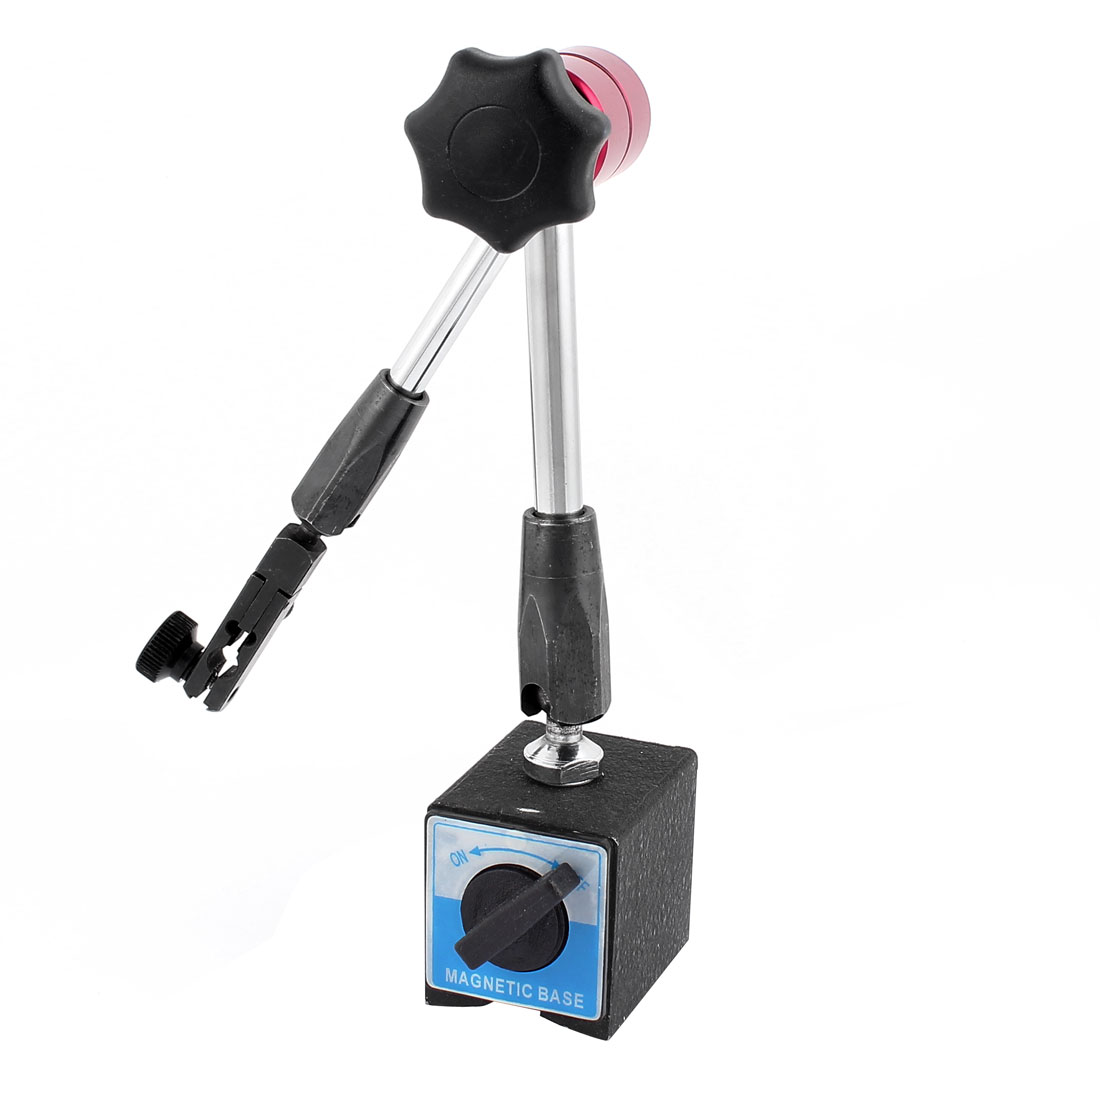 3-Joint Adjustable Digital Level Dial Test Indicator tool Mechanical Universal Magnetic Stand